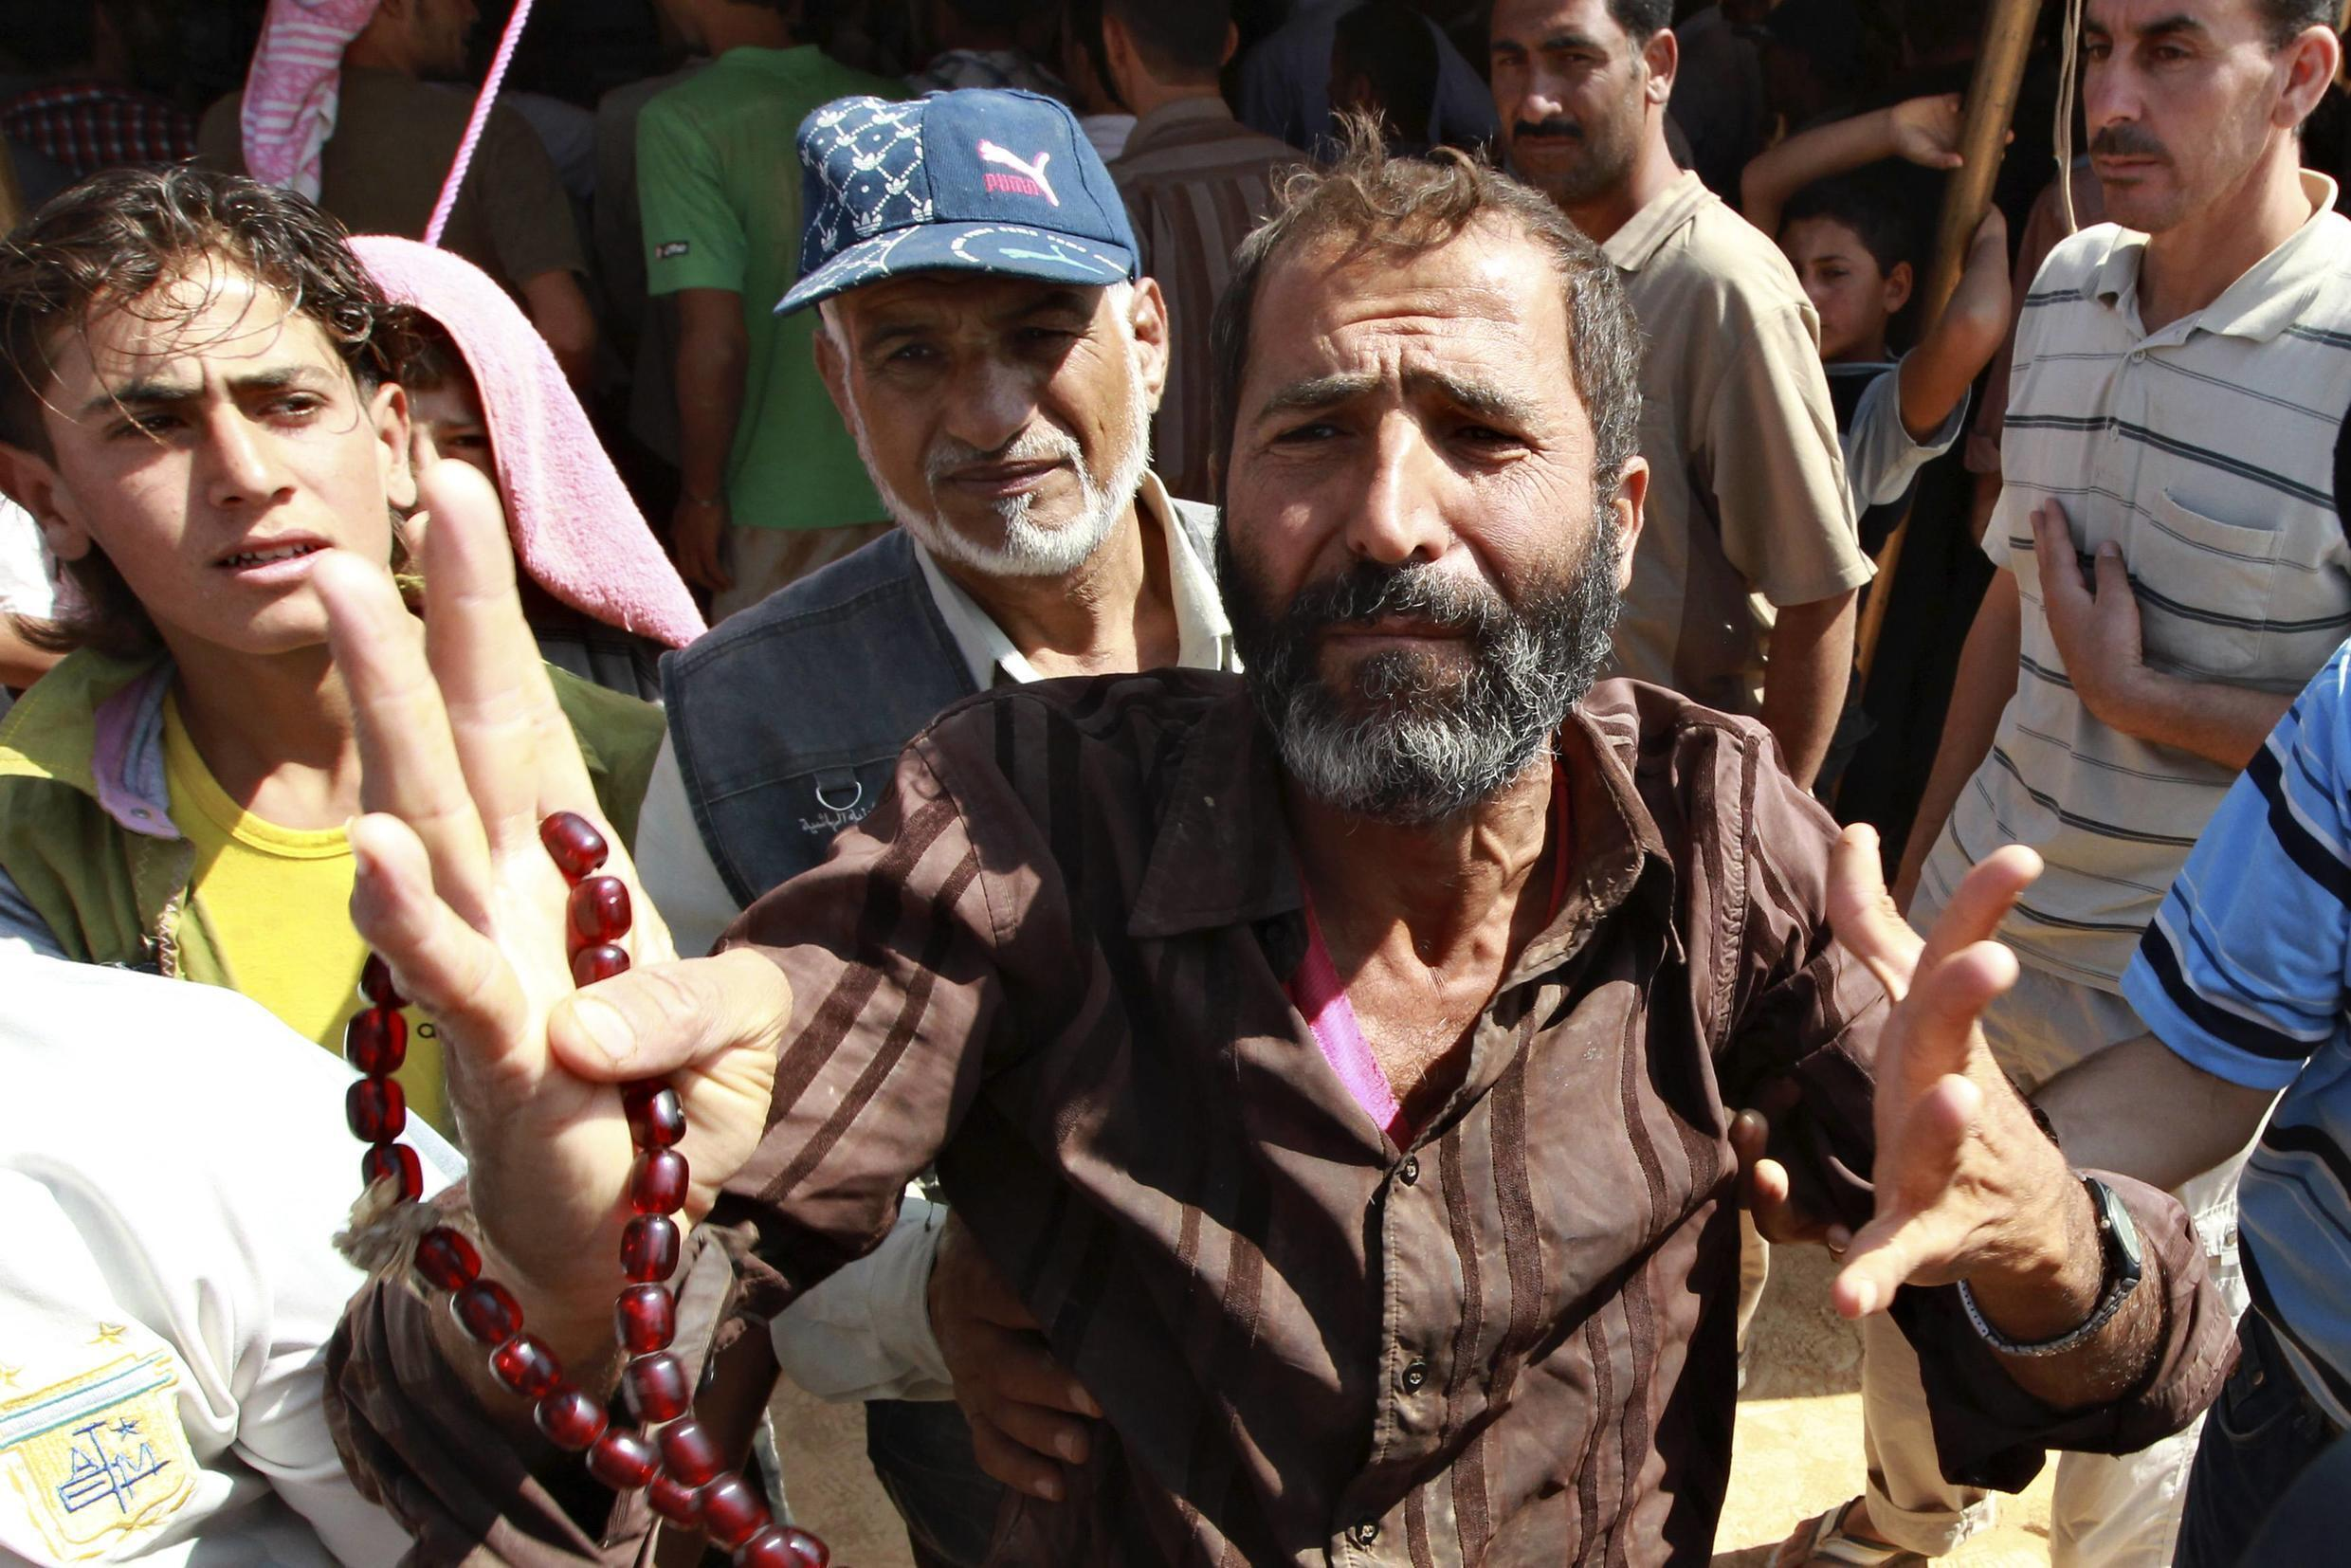 A Syrian refugee makes a complaint over the management of the Al Zaatri refugee camp in the Jordanian city of Mafraq